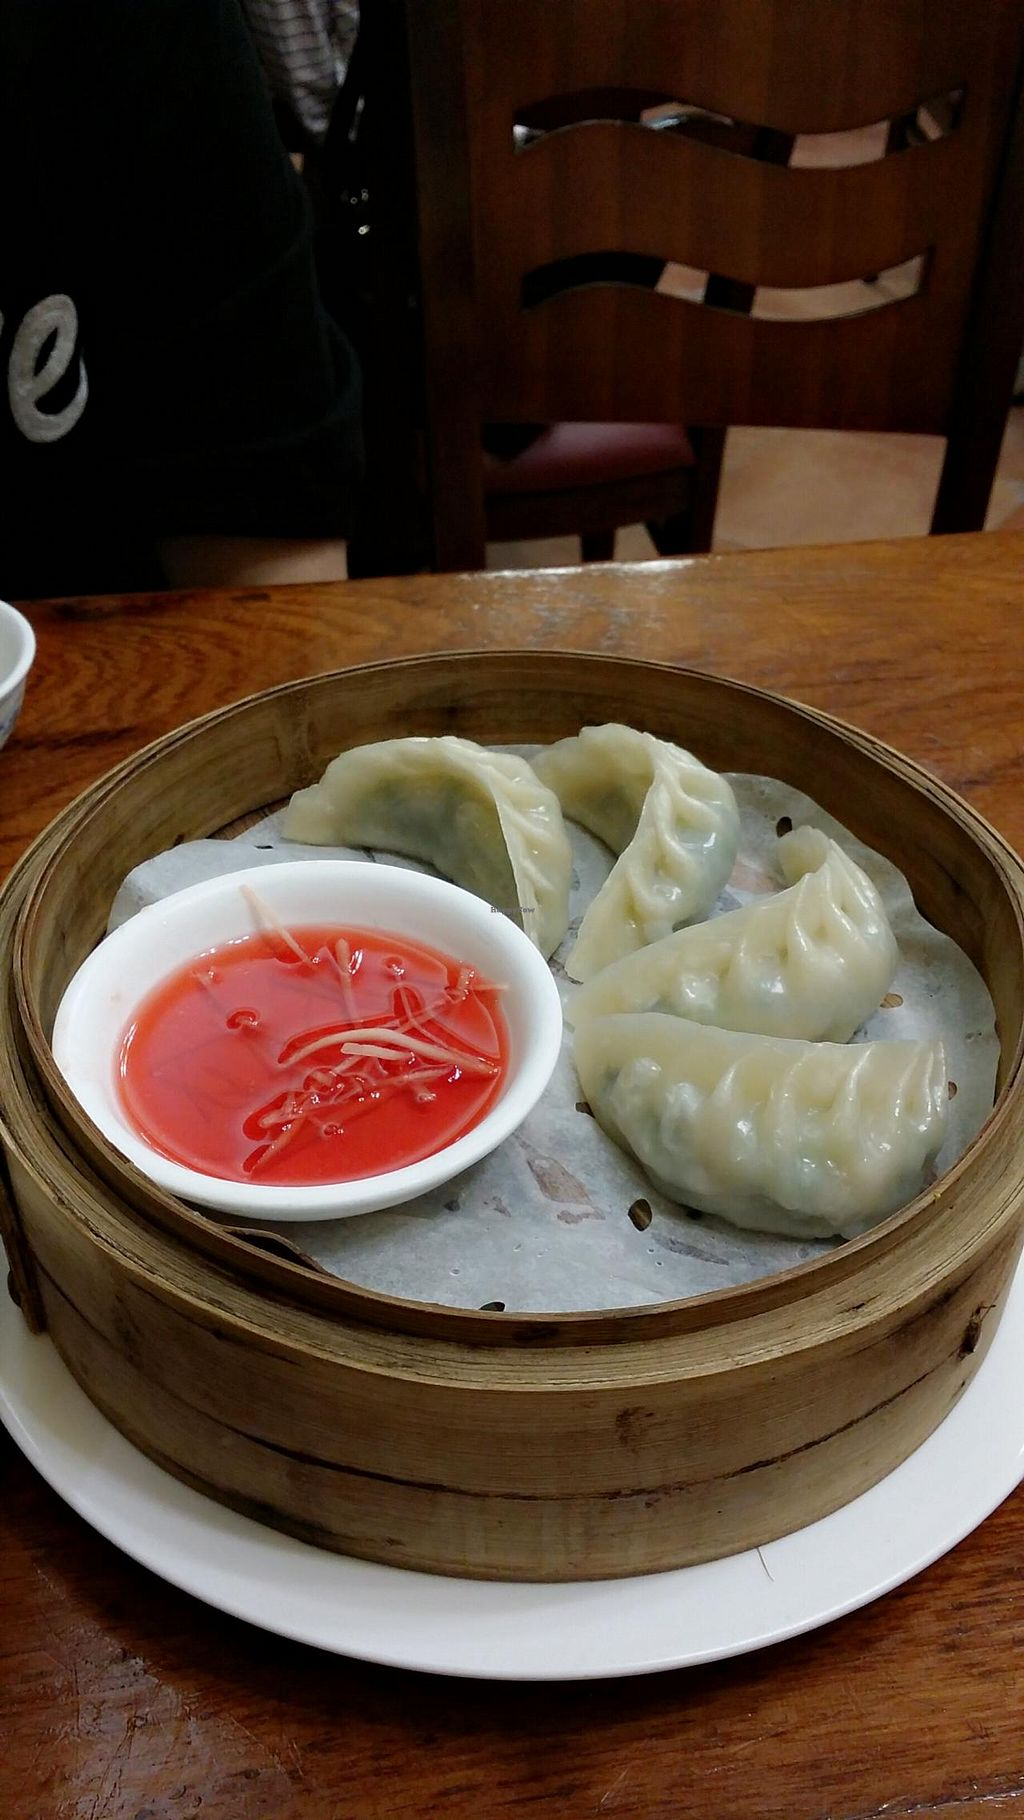 """Photo of Shanghai Yuen Vegetarian  by <a href=""""/members/profile/jungsiah"""">jungsiah</a> <br/>Vegetables and 'pork' dumplings <br/> May 1, 2015  - <a href='/contact/abuse/image/16464/100862'>Report</a>"""